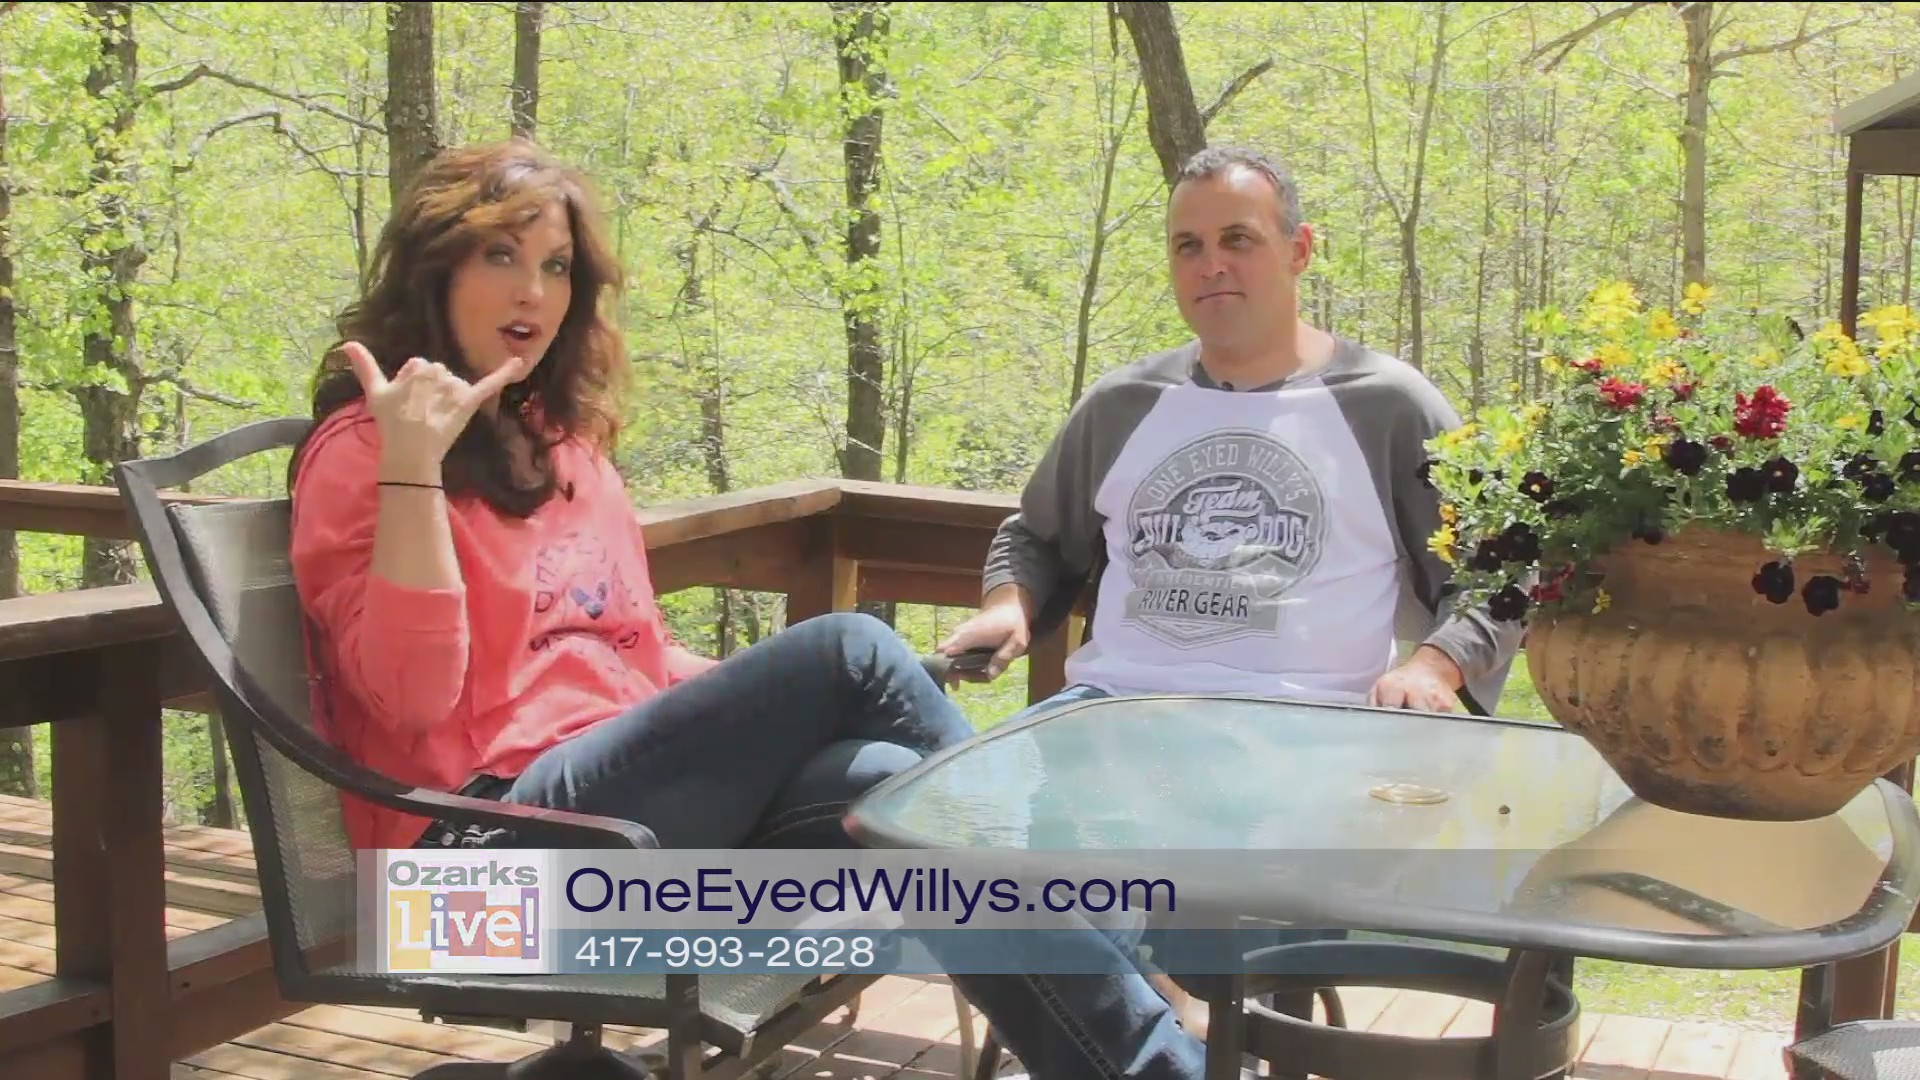 One Eyed Willy's Campground - 4/22/19